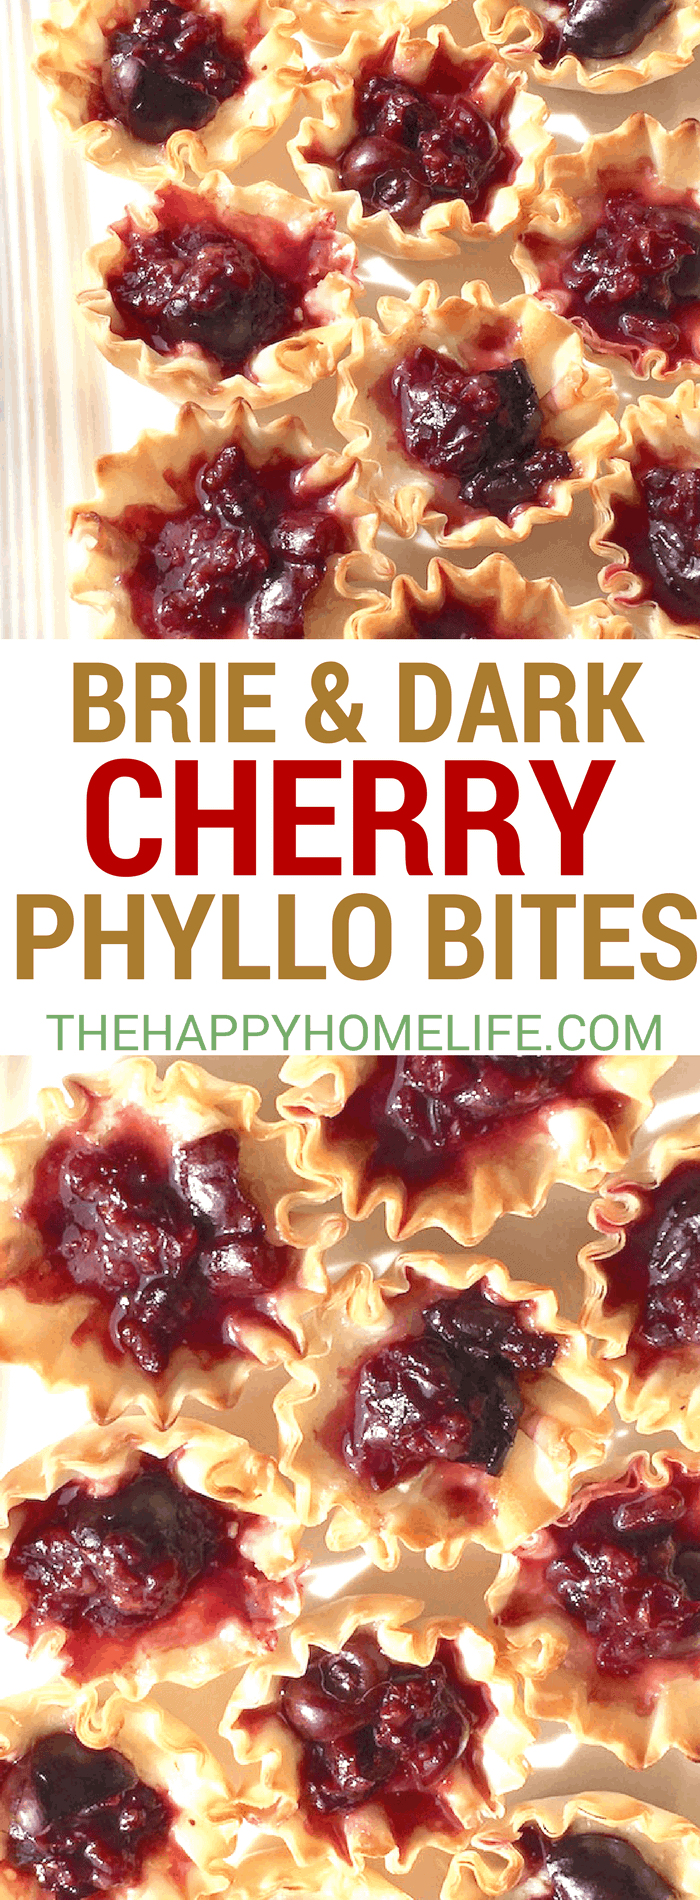 Need a super easy appetizer for your next holiday gathering? If so, you'll definitely want to give these bite-sized phyllo cups a try. The flavors of warm, melted Brie and sweet dark cherries are enhanced with a slight hint of maple syrup.